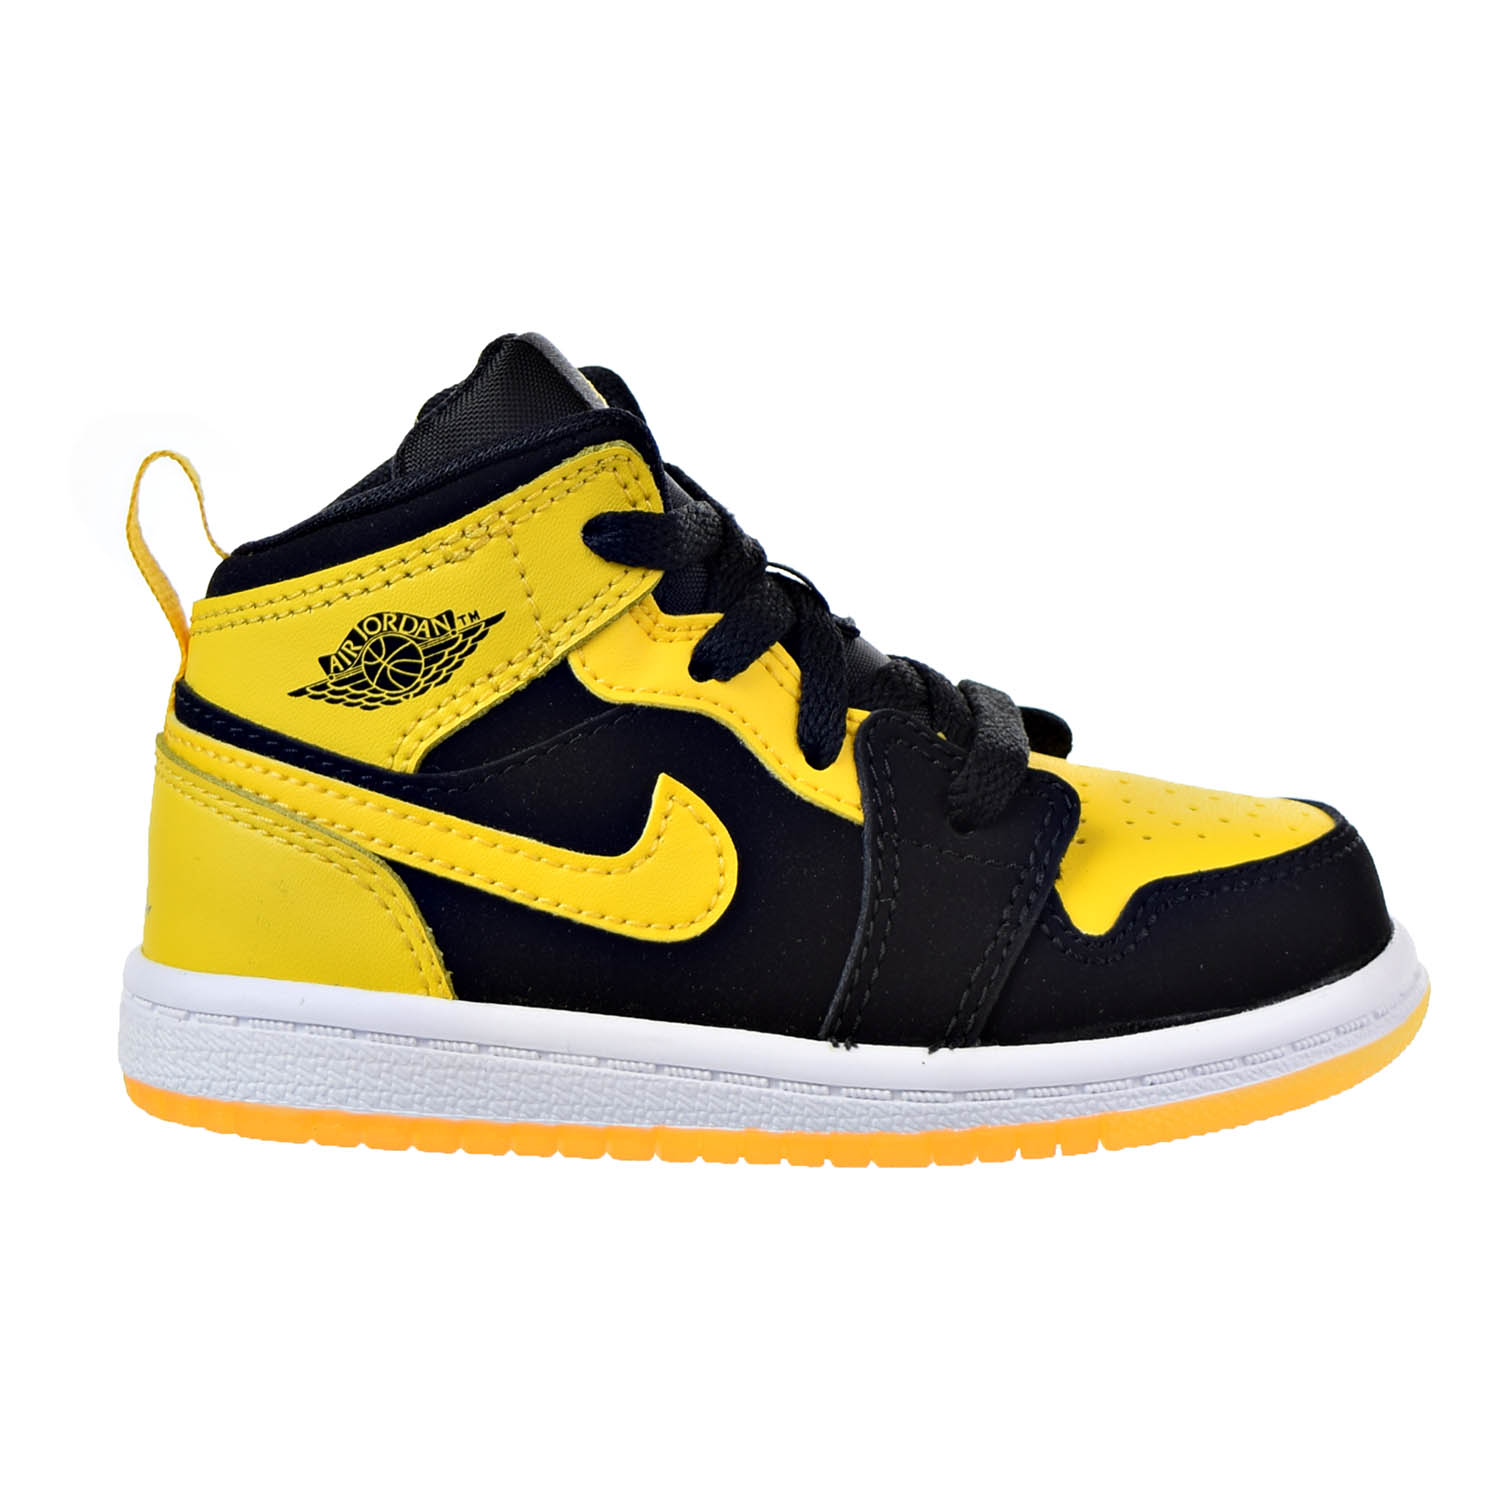 Nike 1 Mid BT Infants/Toddlers Shoes Black/Varsity Maize-...